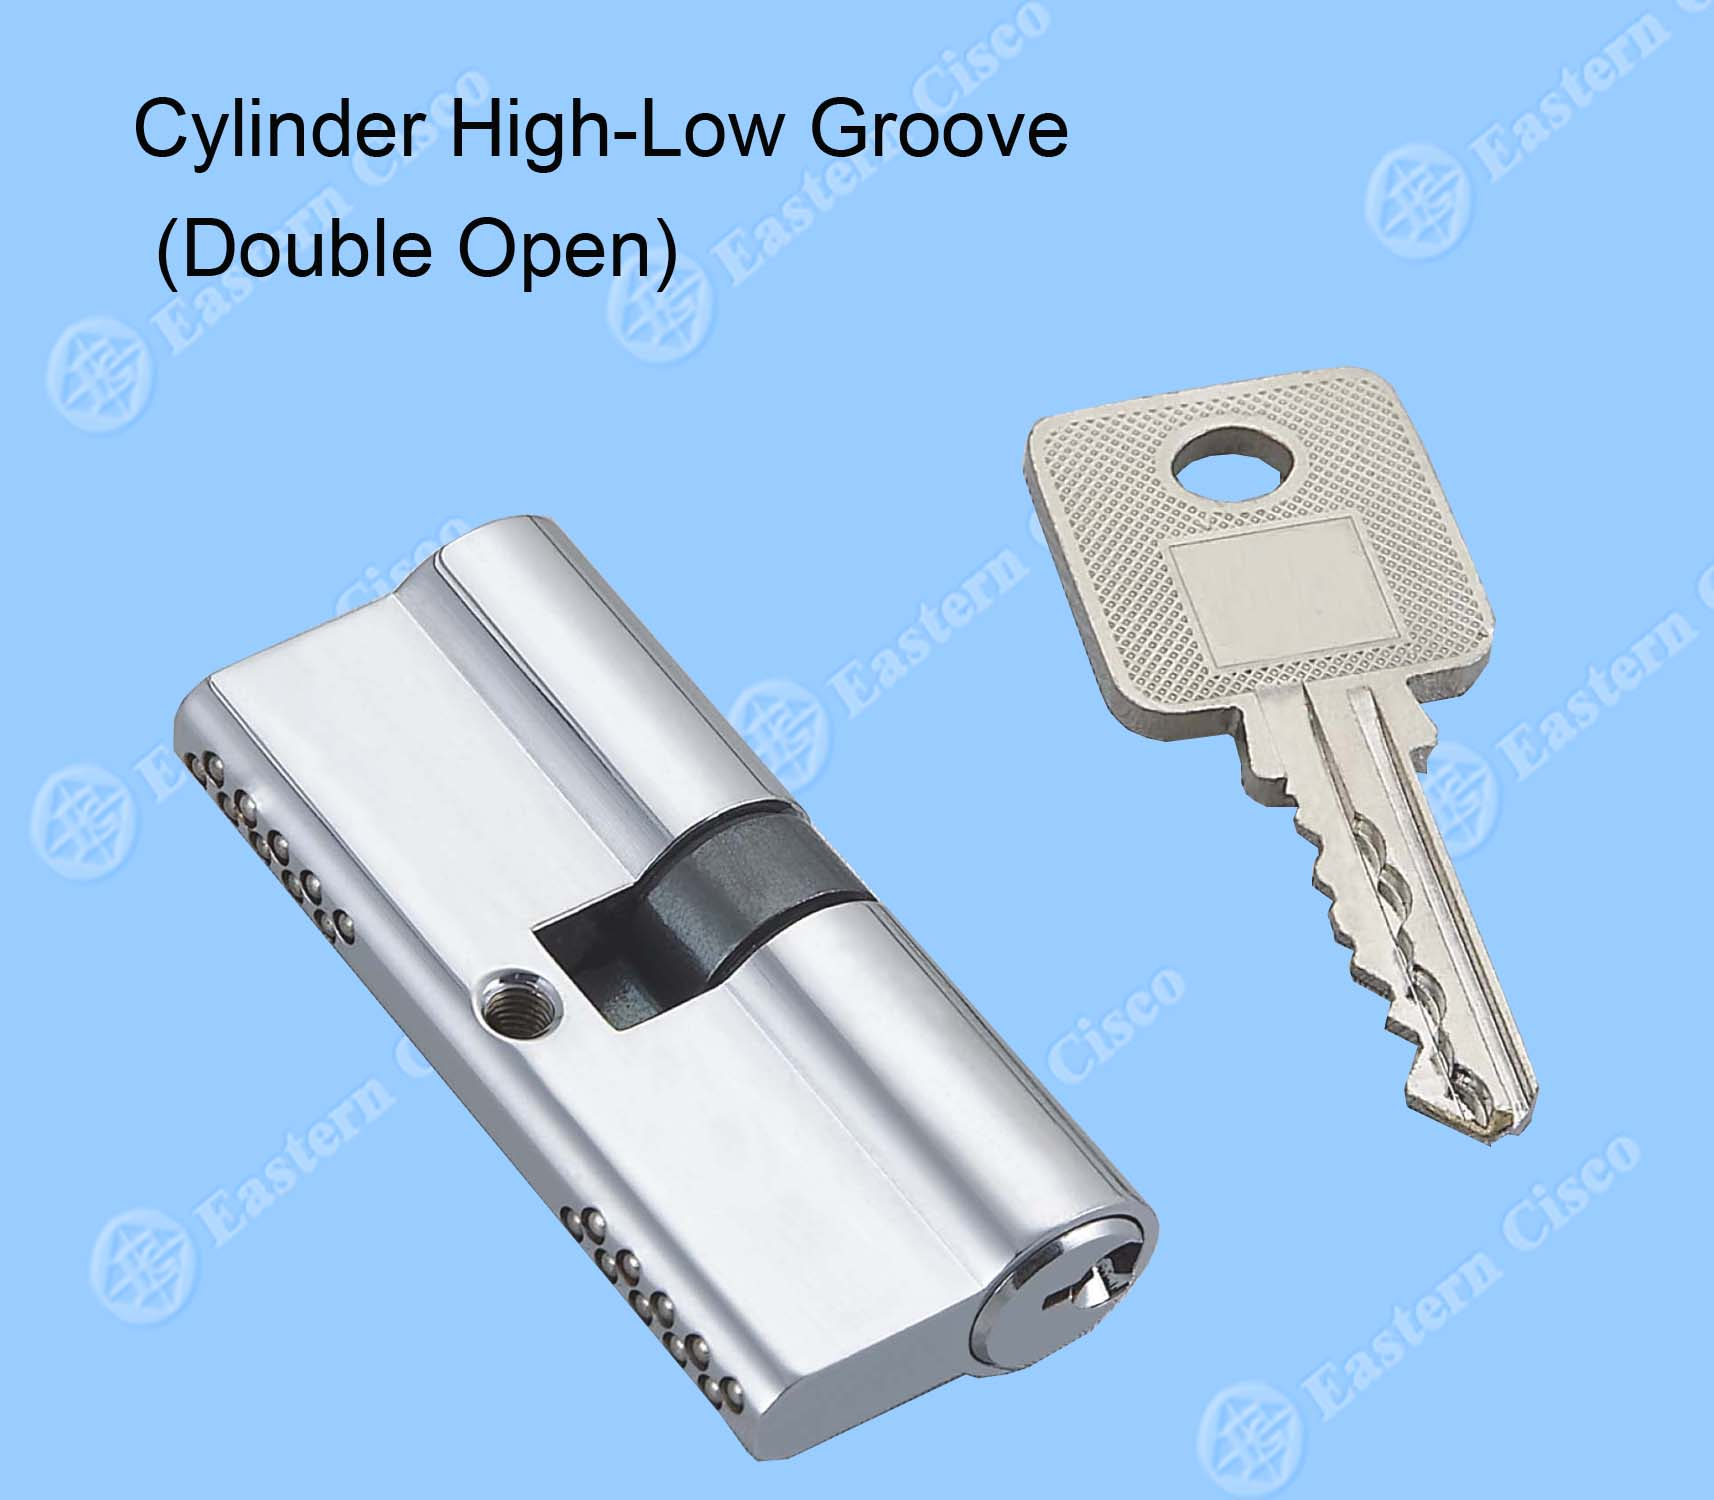 Cylinder High-Low Groove